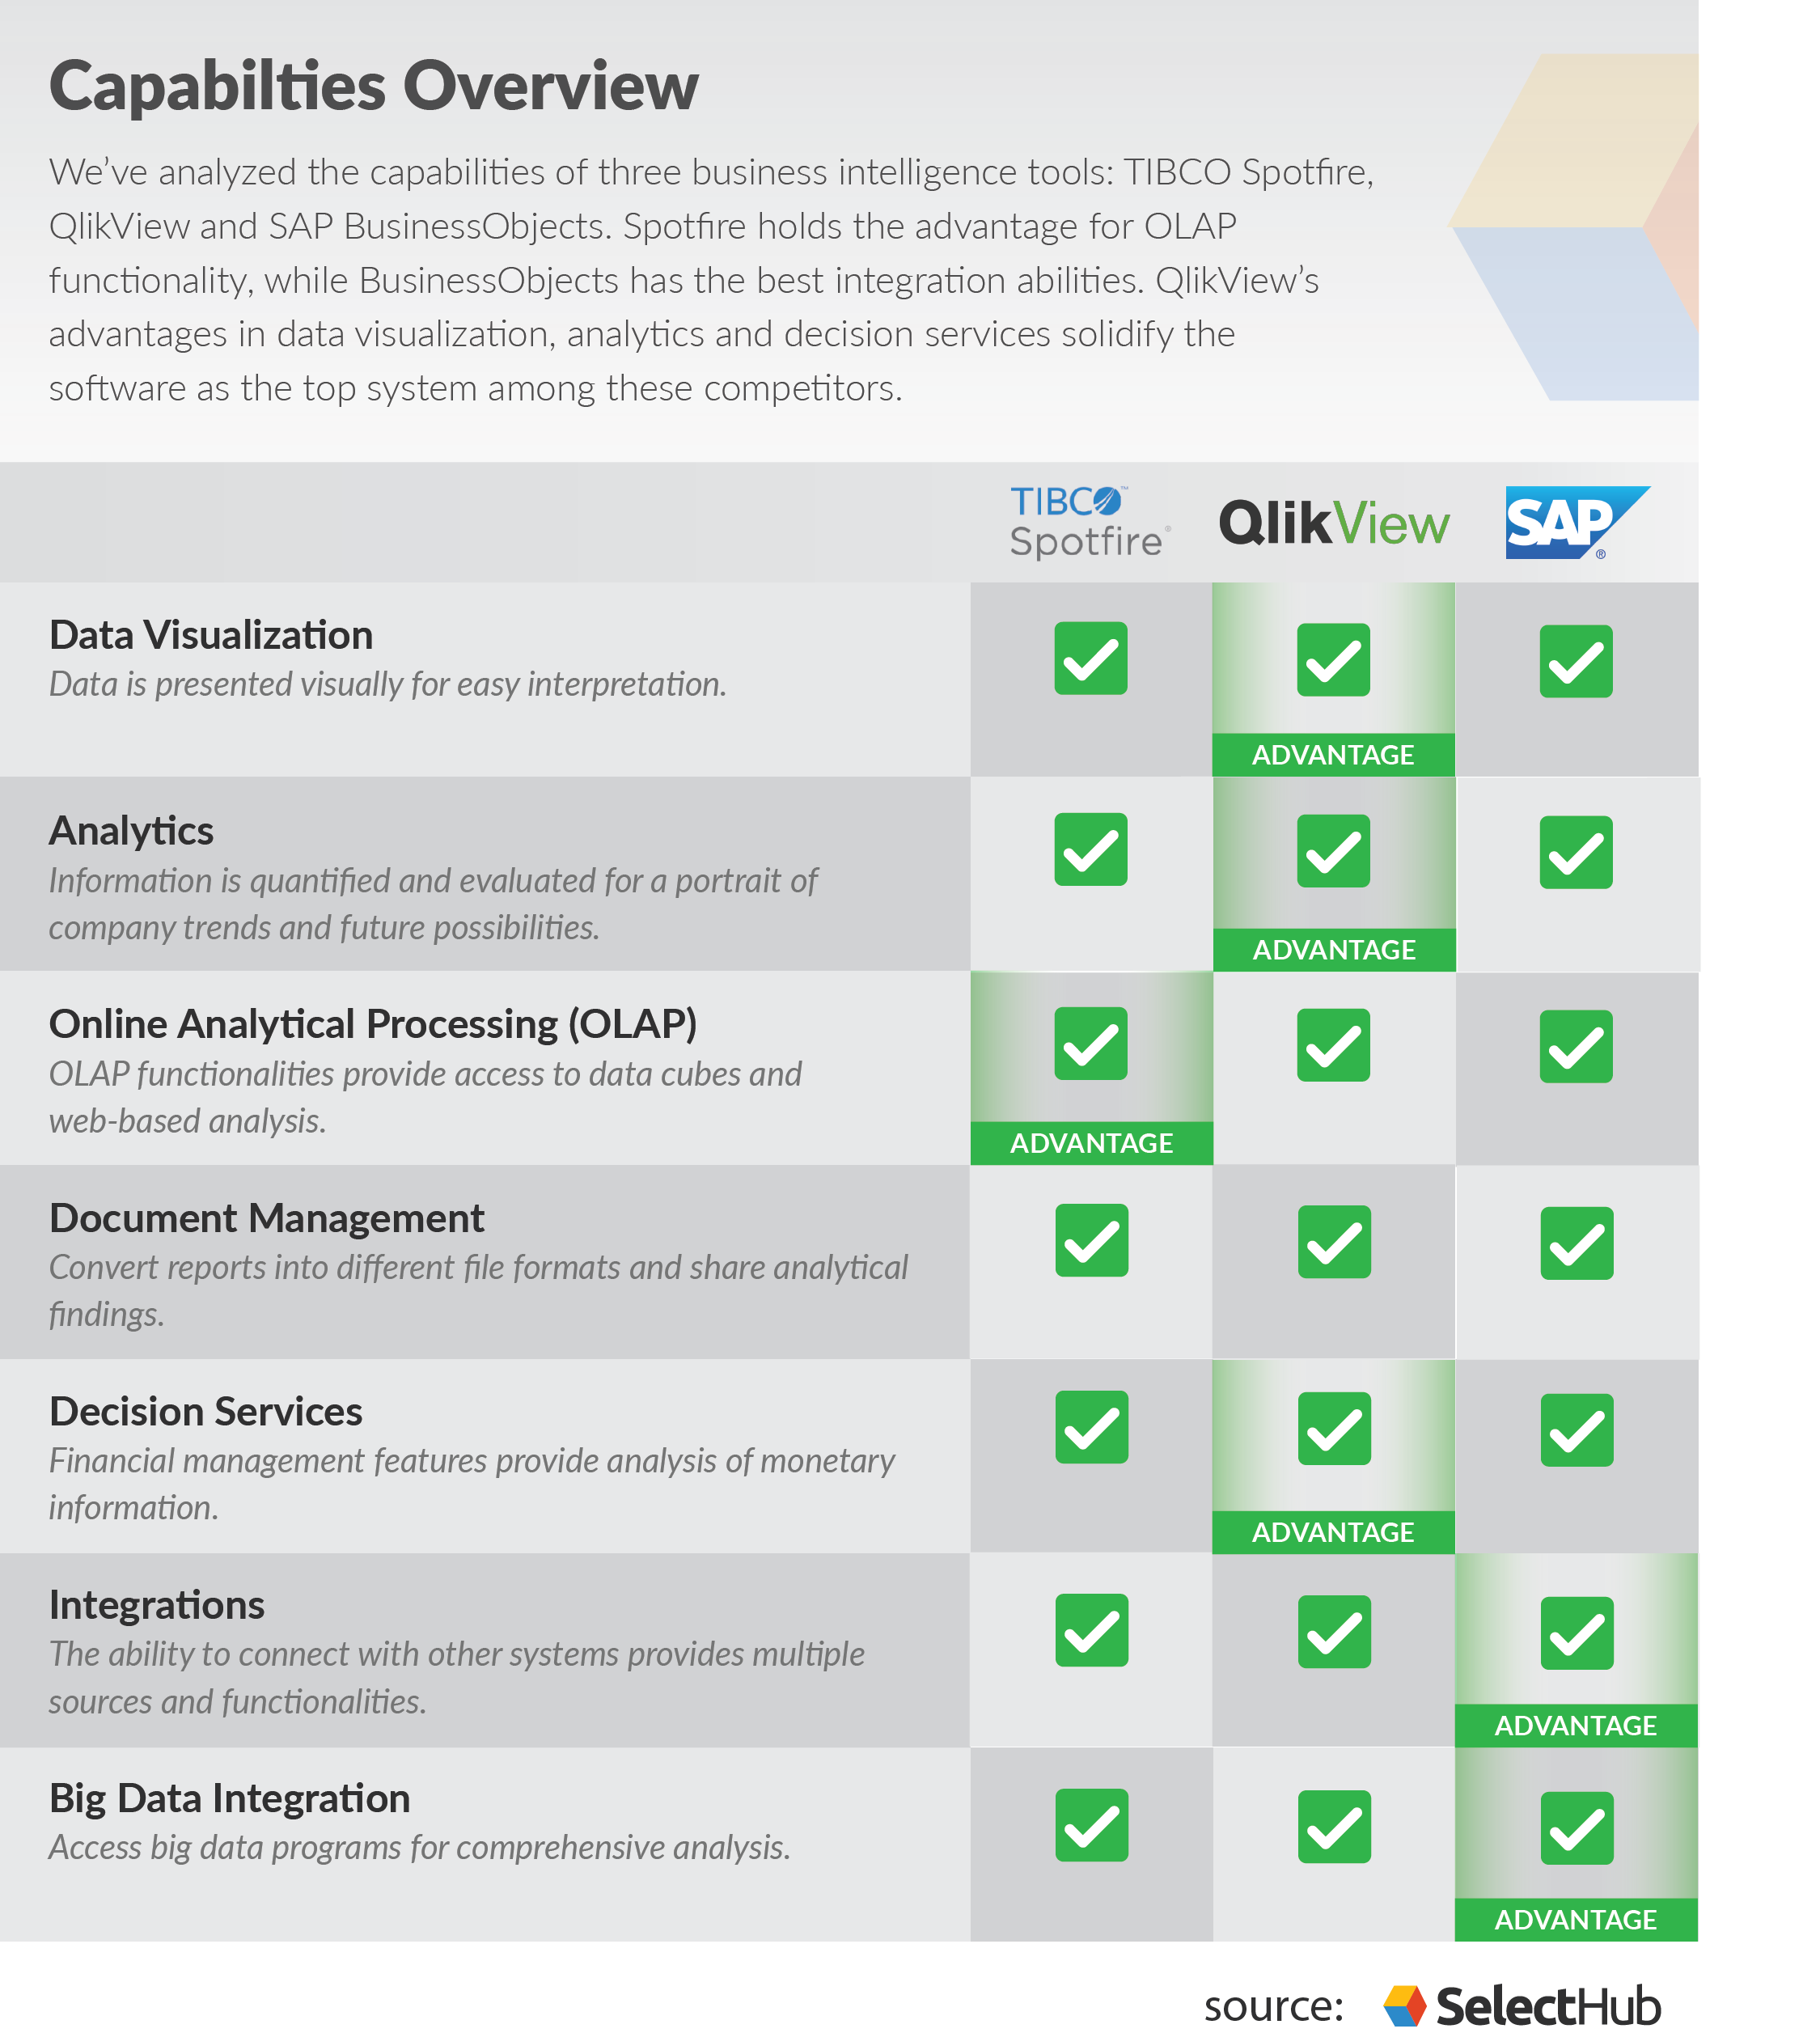 Spotfire Vs QlikView Vs SAP